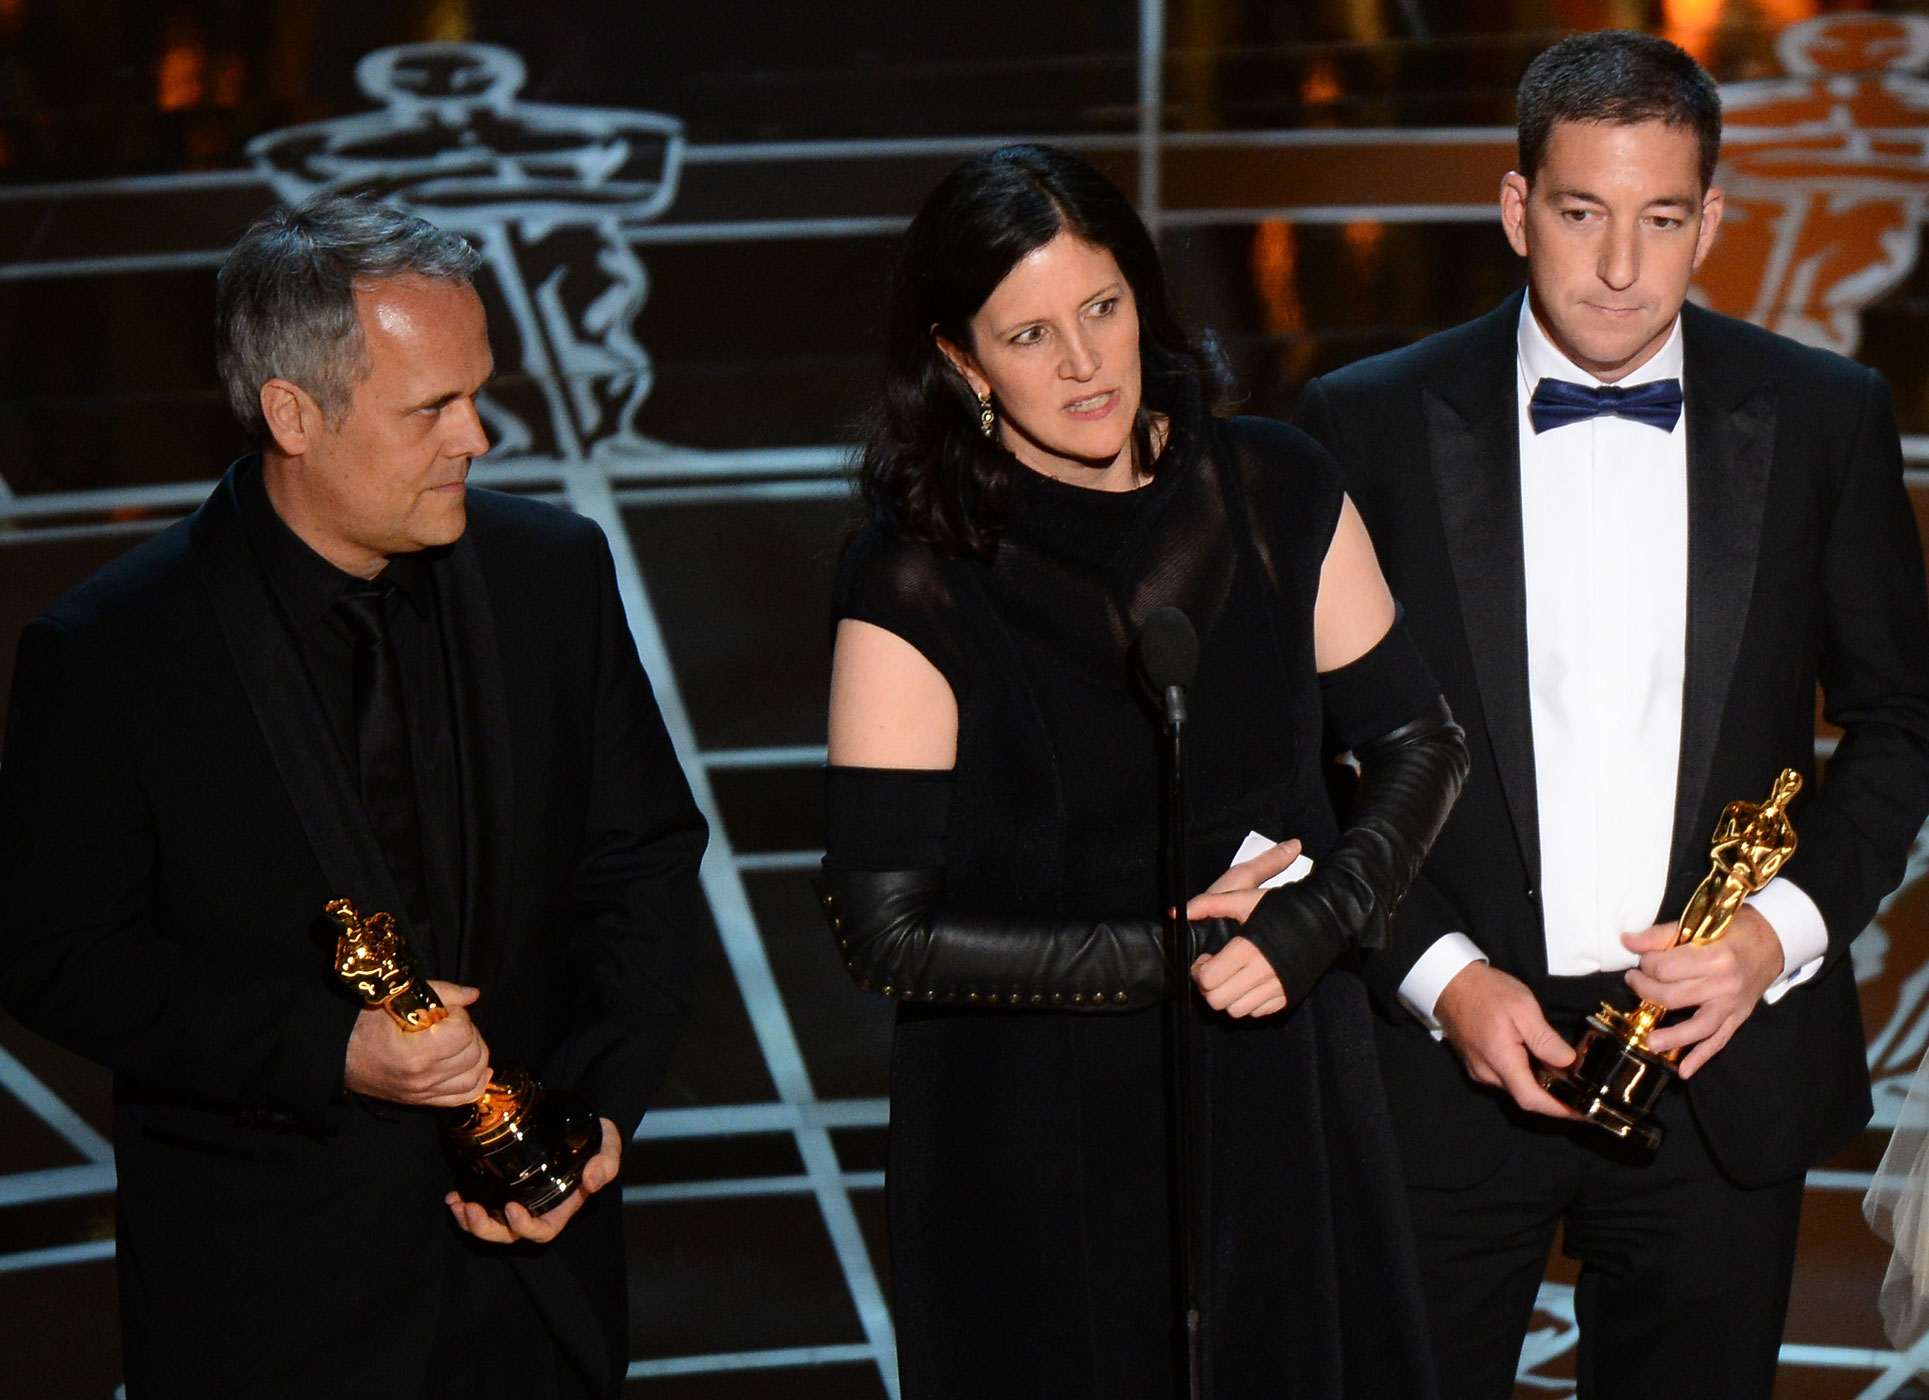 Winners for Best Documentary Feature CitizenFour Laura Poitras, center, and Dirk Wilutzky, left, give their acceptance speech flanked by Glenn Greenwald  at the 87th Oscars Feb. 22, 2015 in Hollywood, Calif.